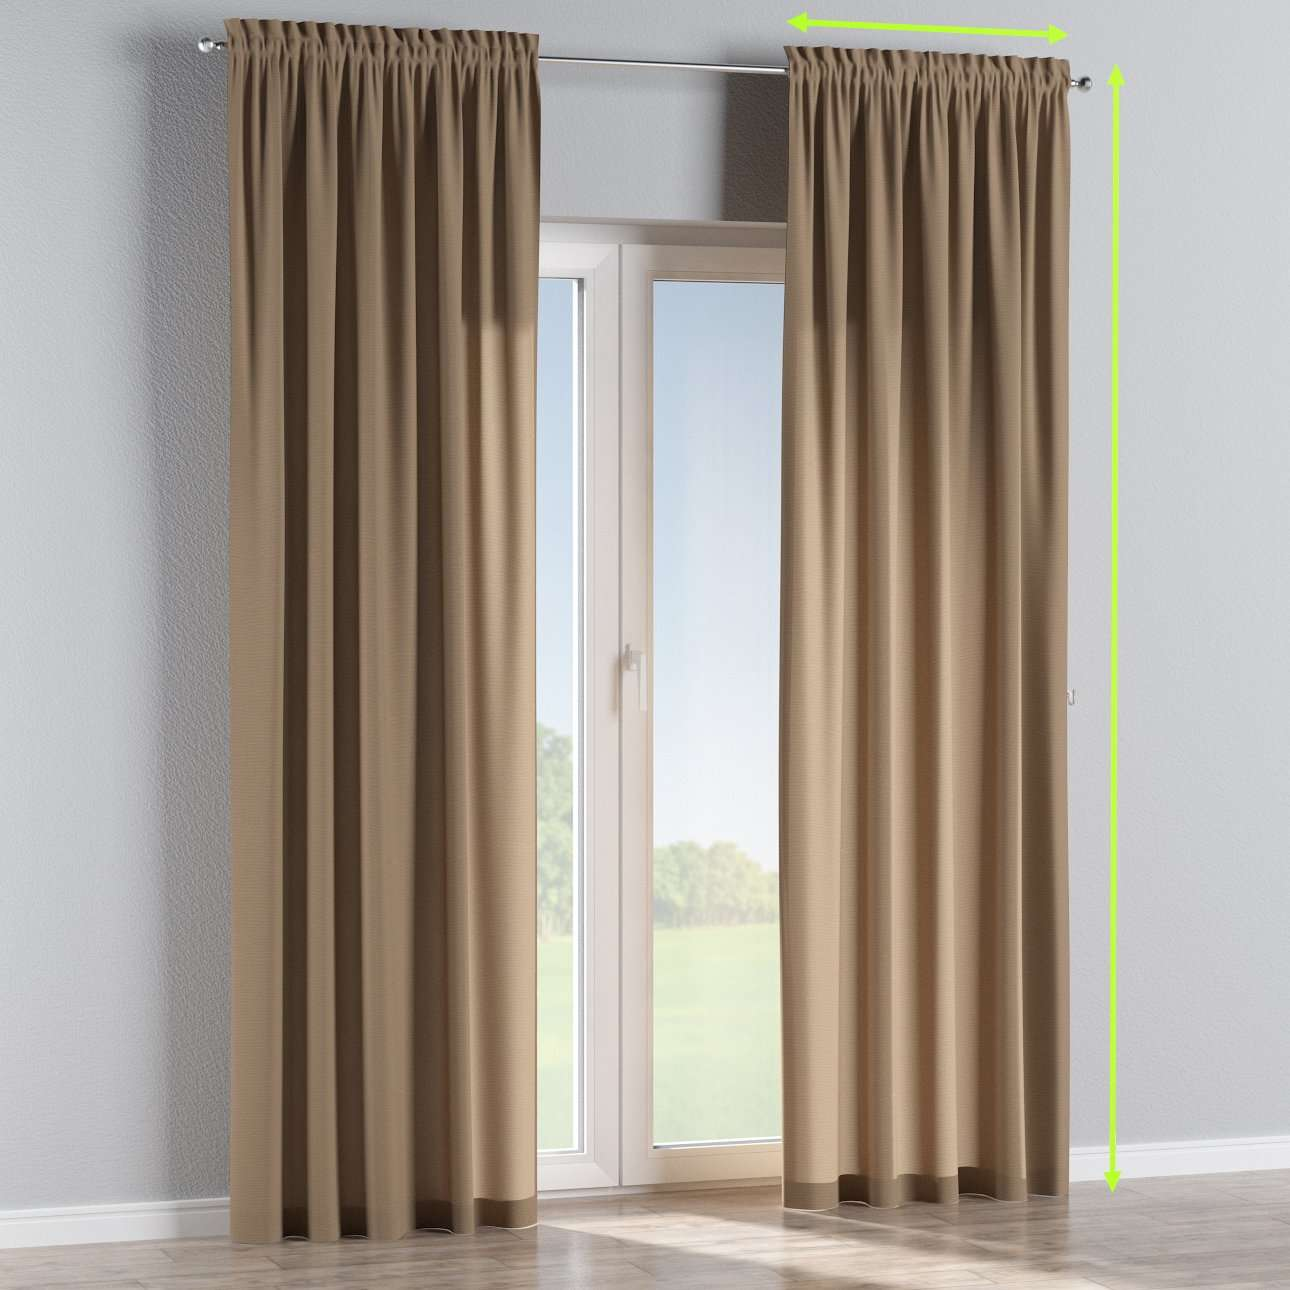 Slot and frill lined curtains in collection Quadro, fabric: 136-09